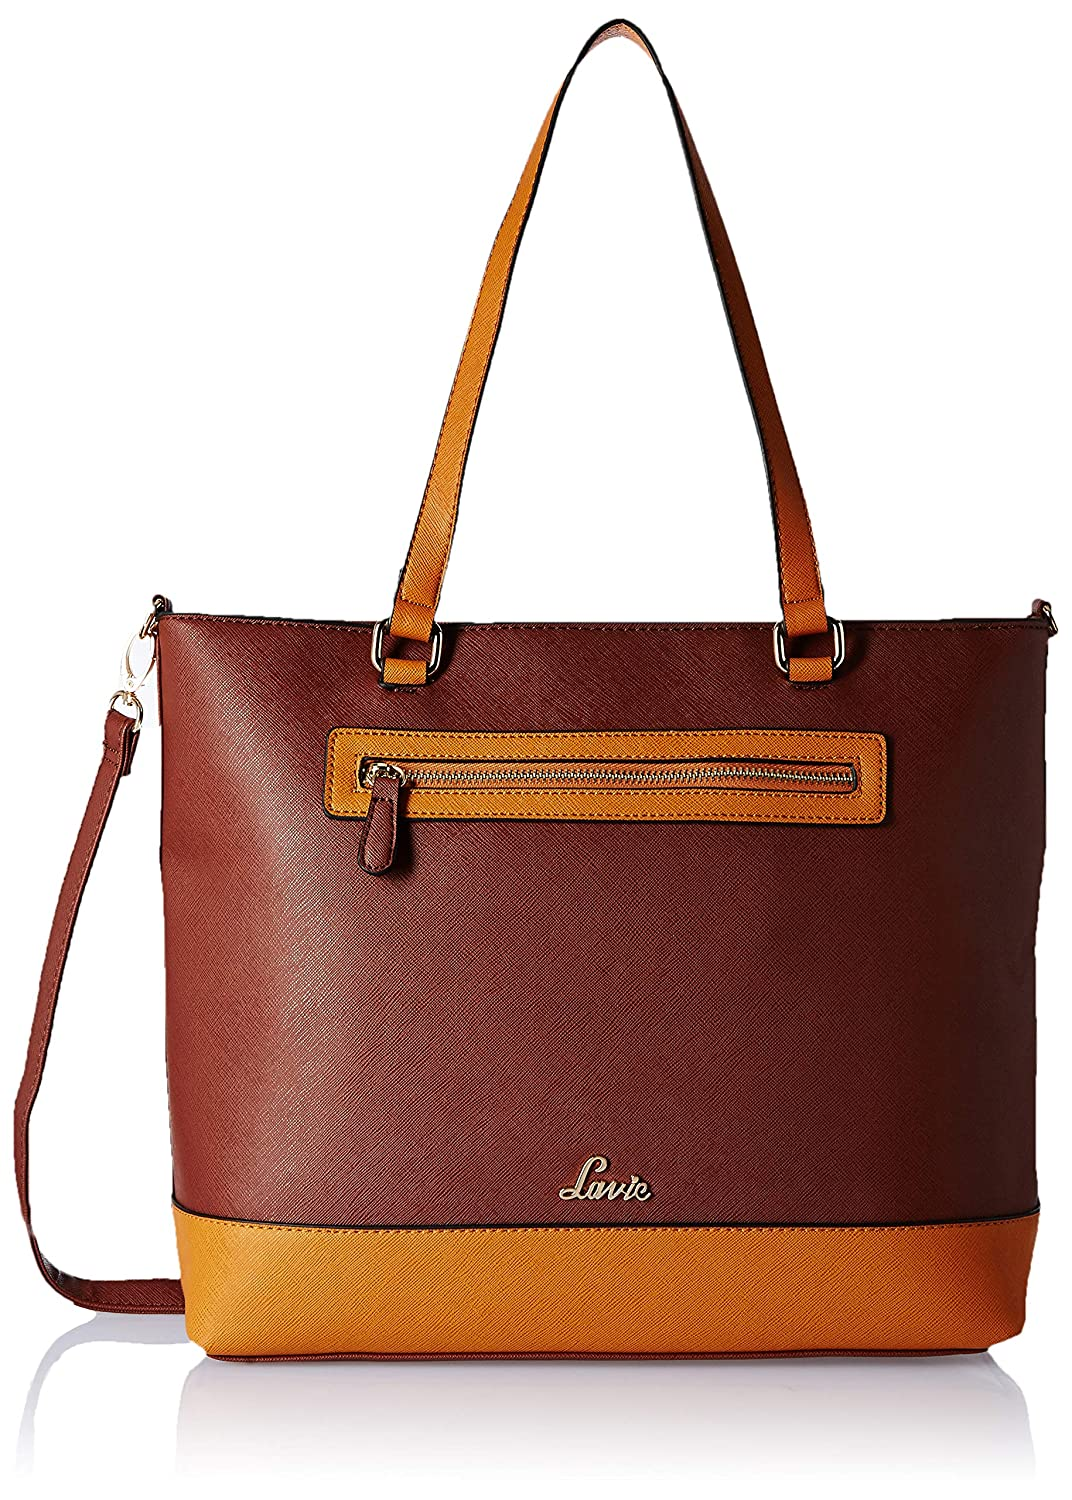 Lavie Stonehenge Women's Tote Bag (Tan)